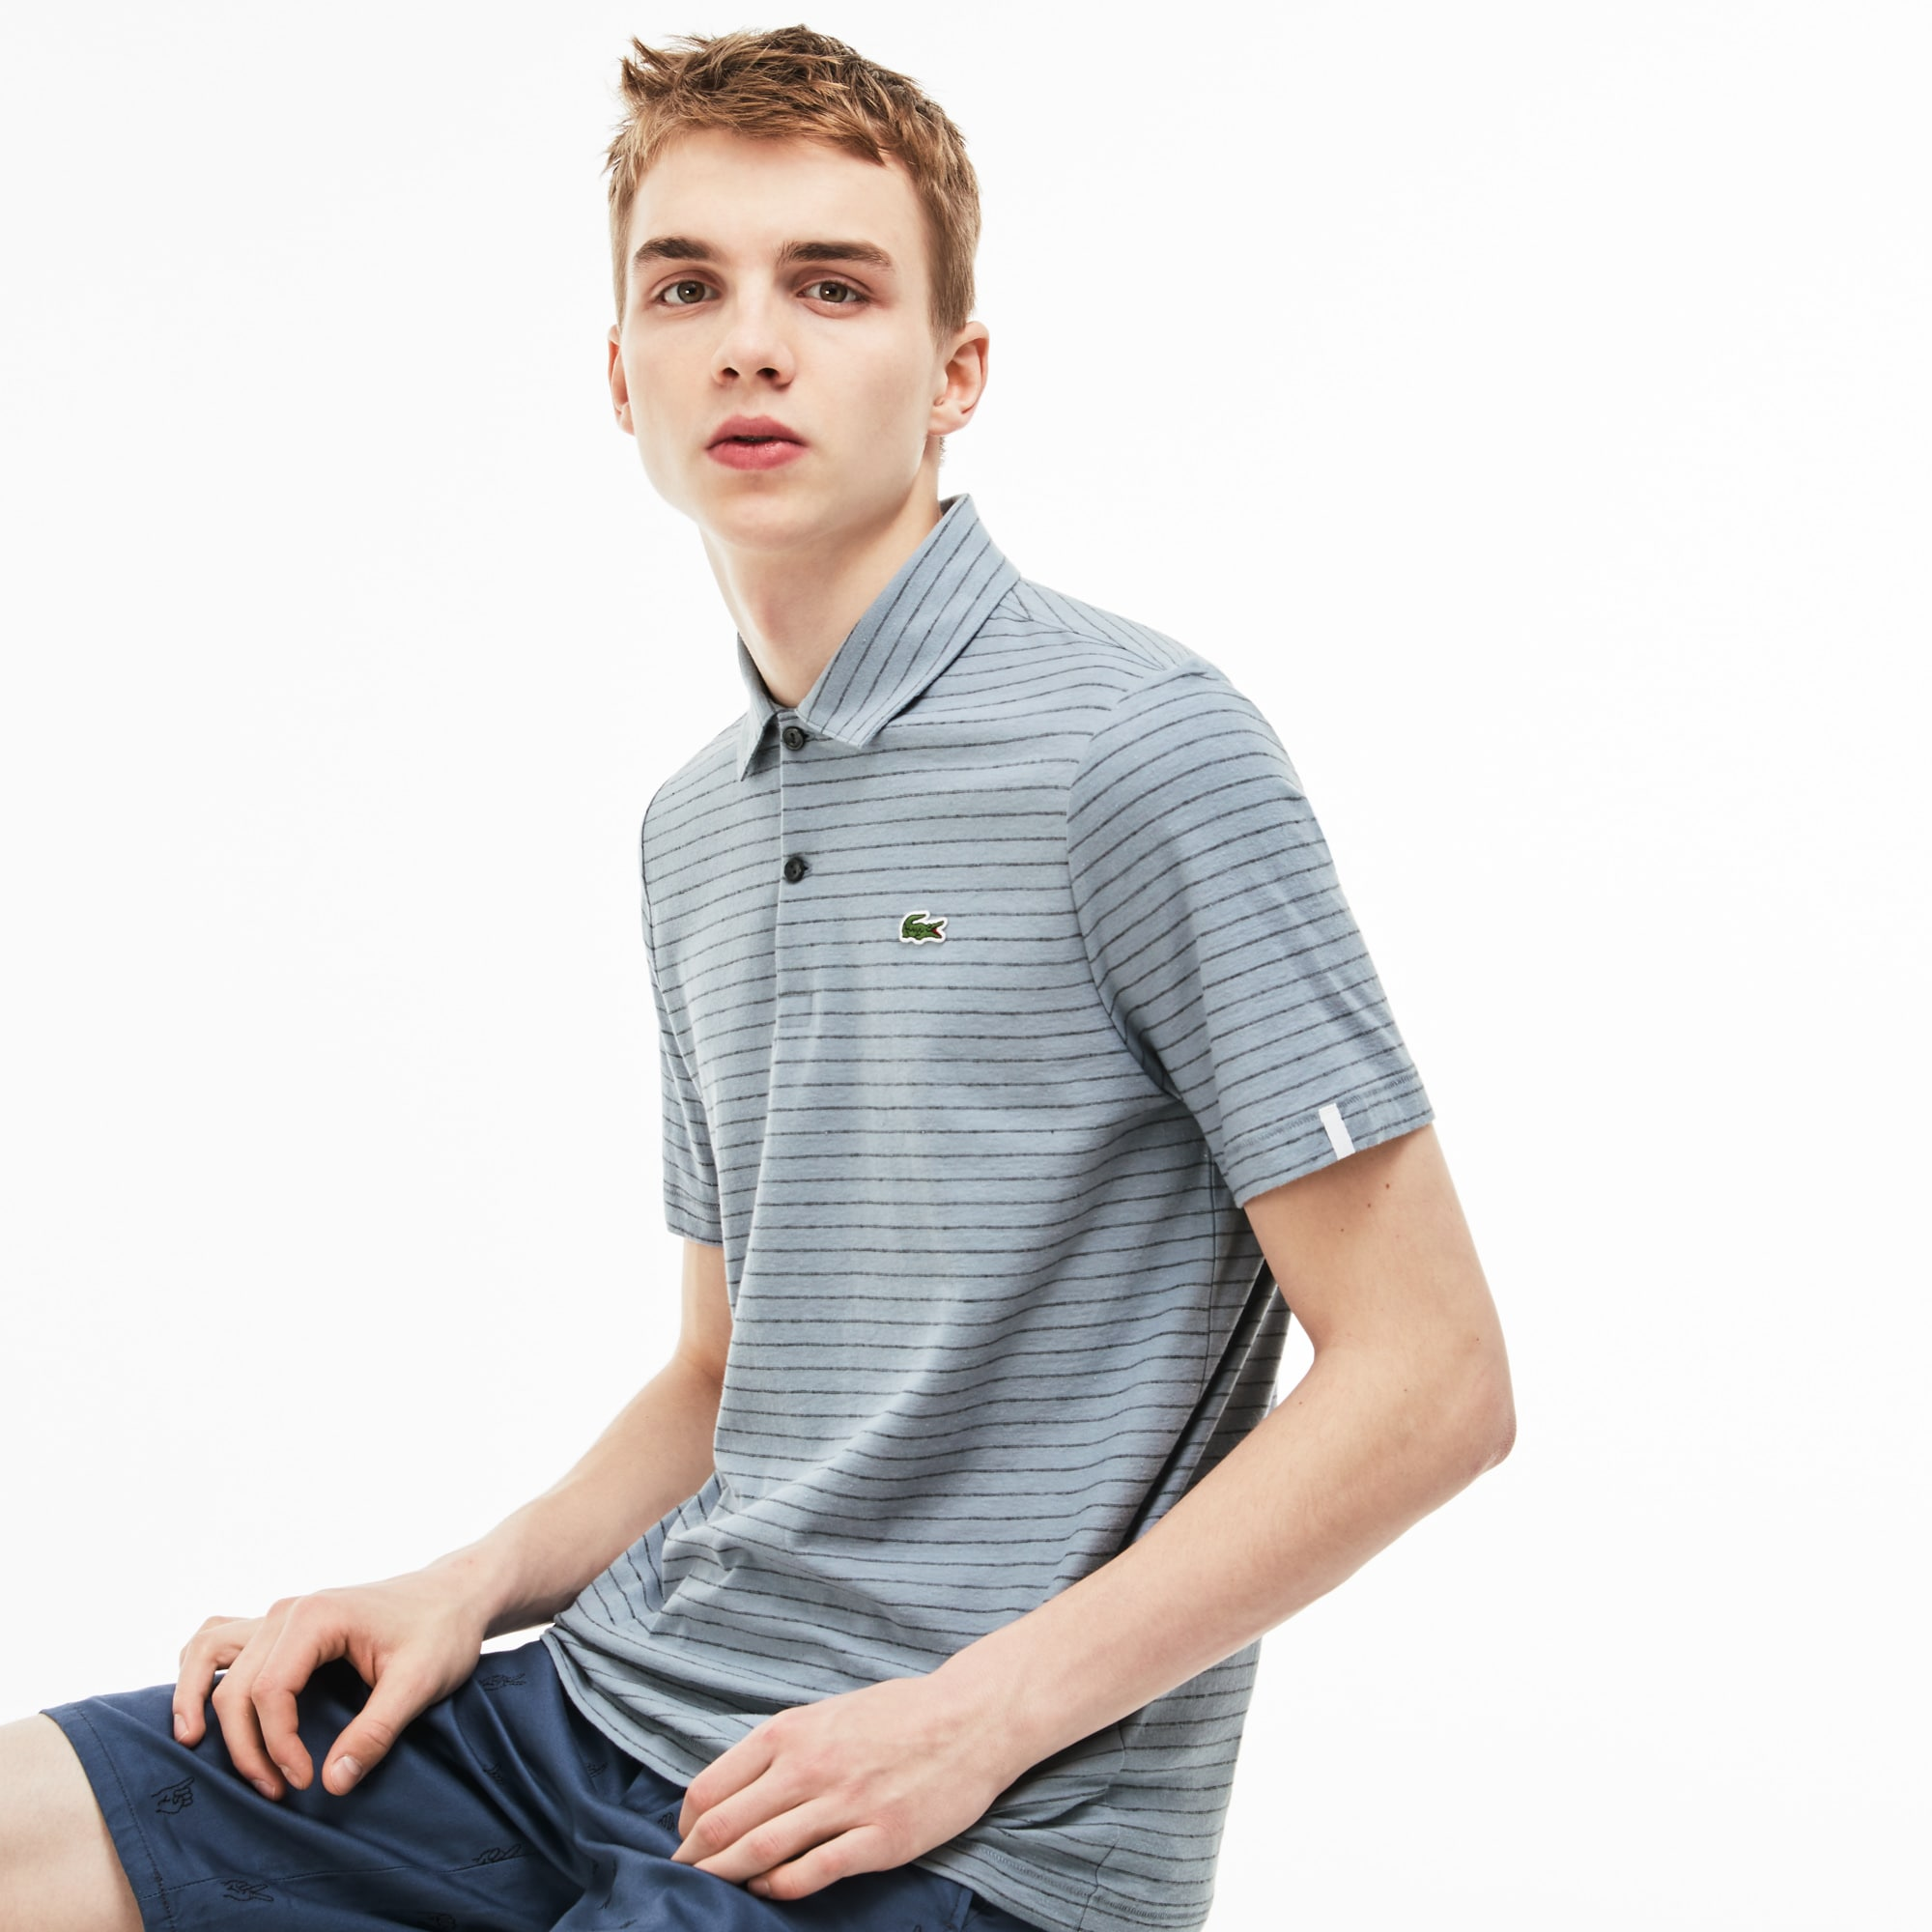 Men's Lacoste LIVE Slim Fit Striped Linen and Cotton Jersey Polo